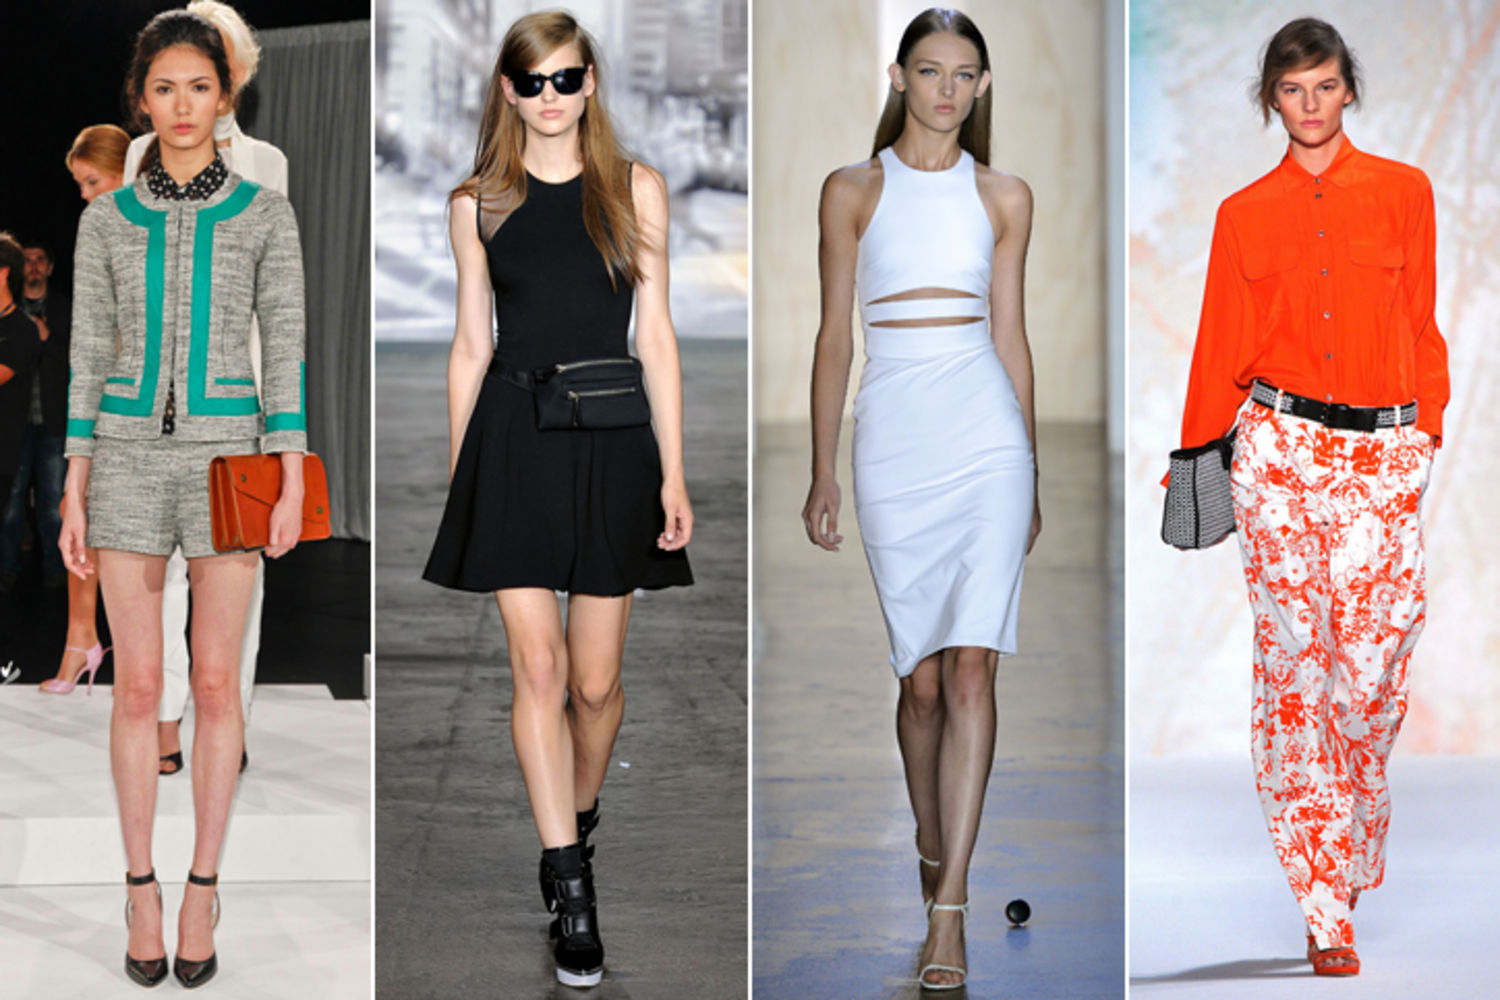 ELLE's fashion experts have rounded up the top must-have fashion trends for spring.